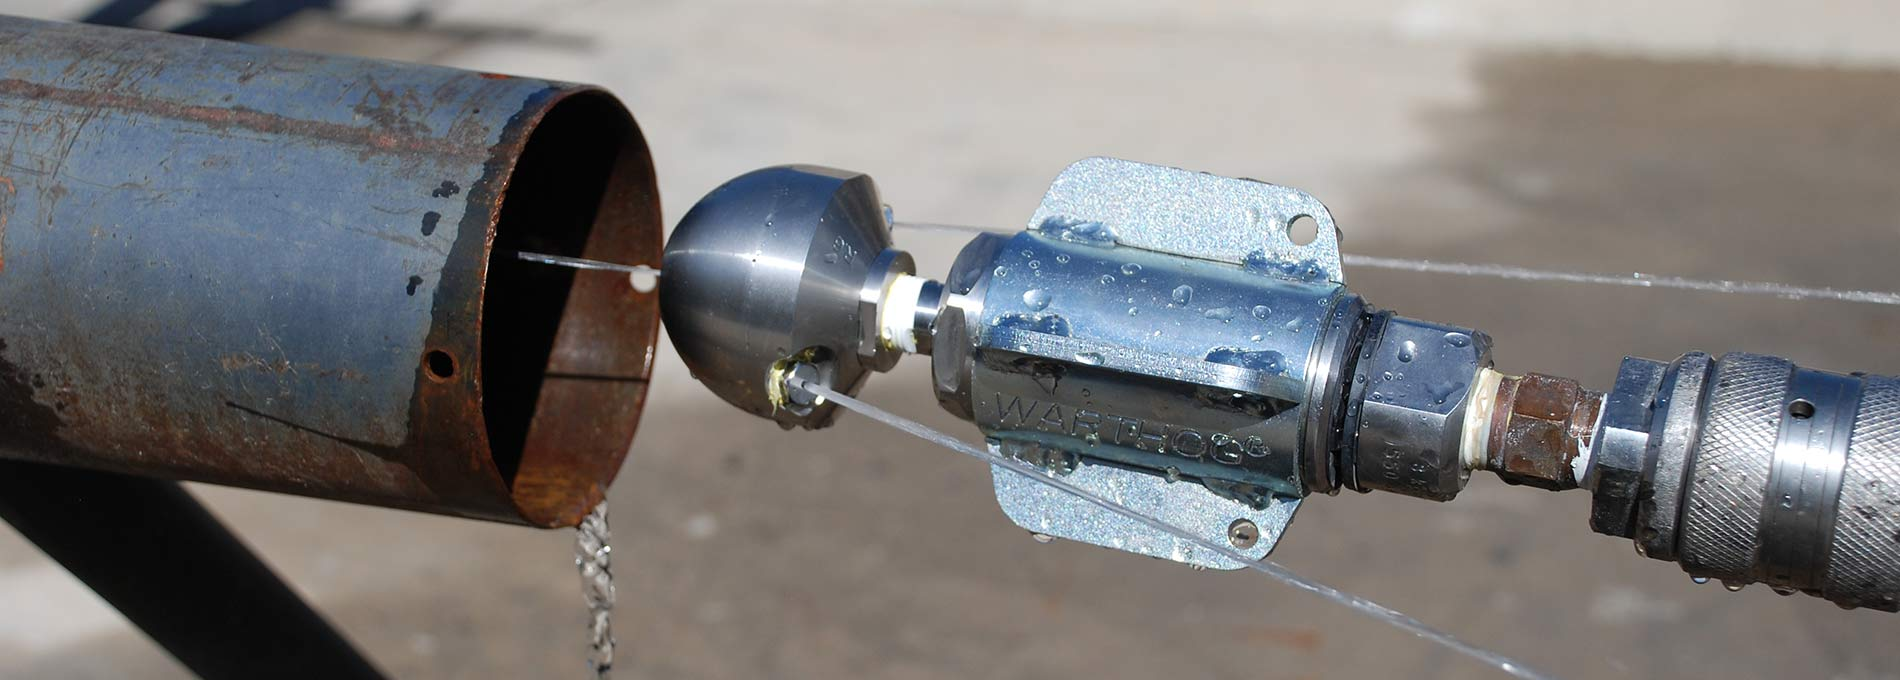 Sewer Cleaning Nozzles Dcs Manufacturing